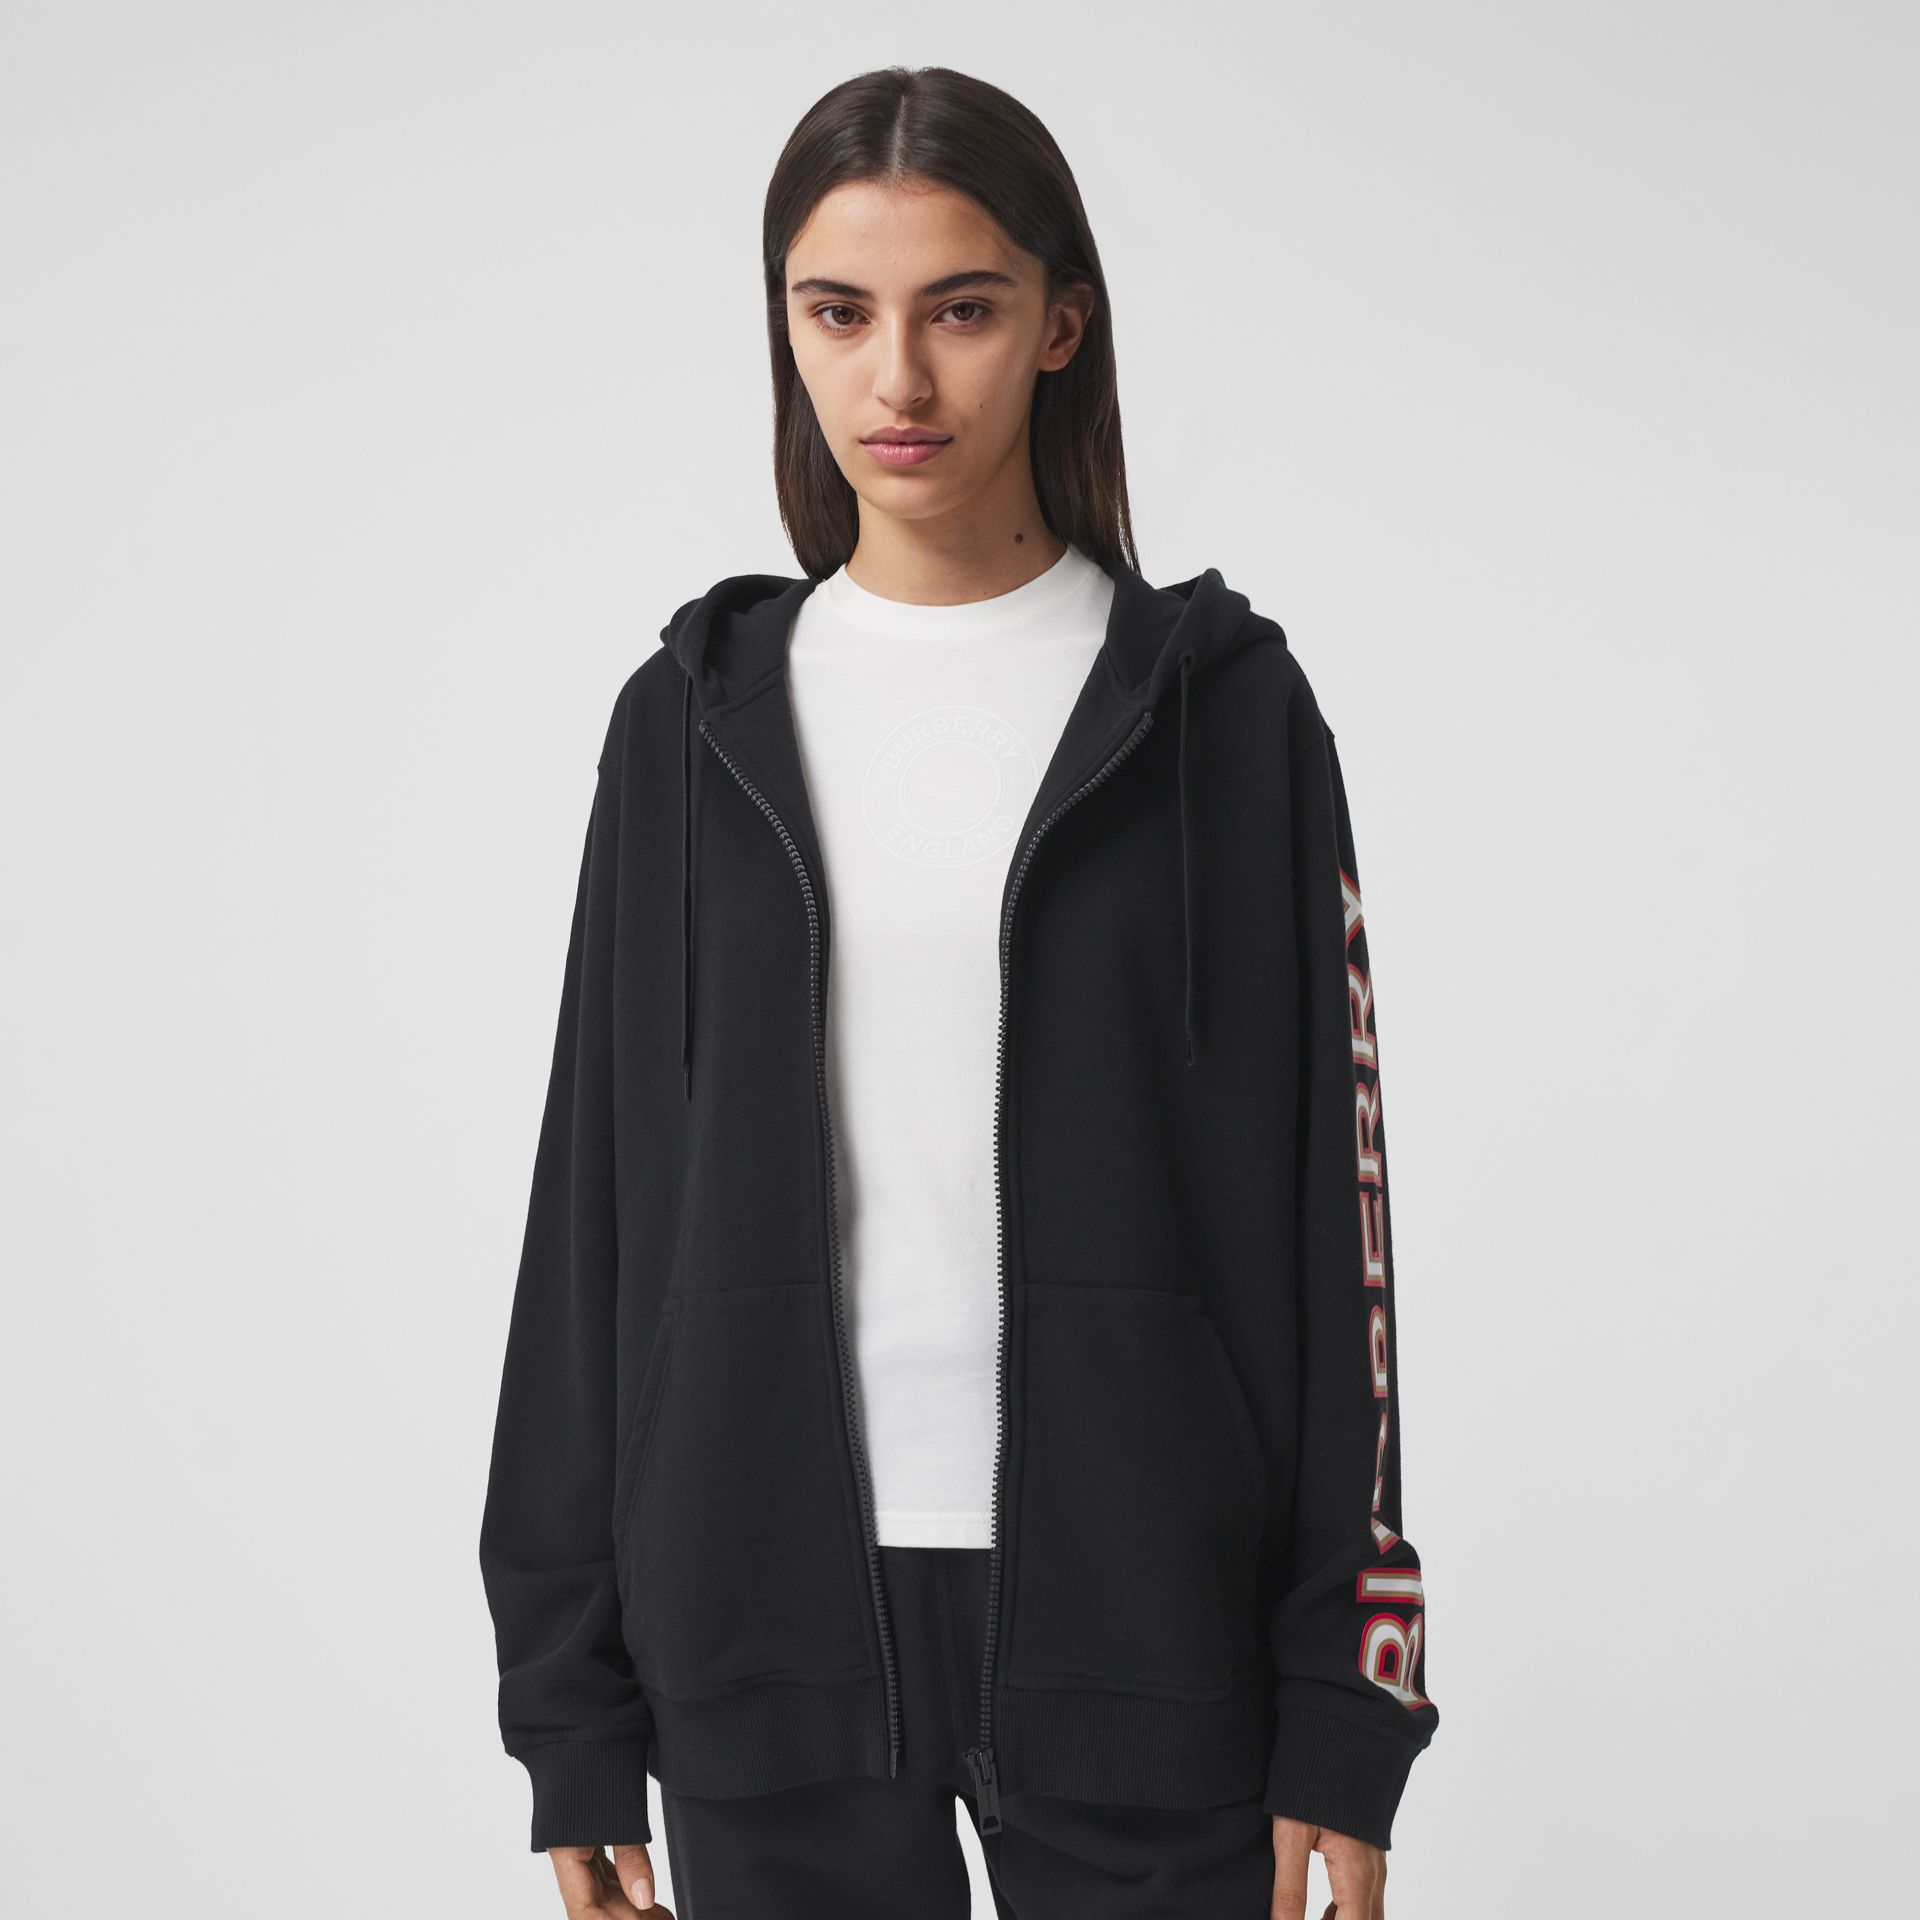 Logo Print Cotton Oversized Hooded Top in Black - Women | Burberry - gallery image 3